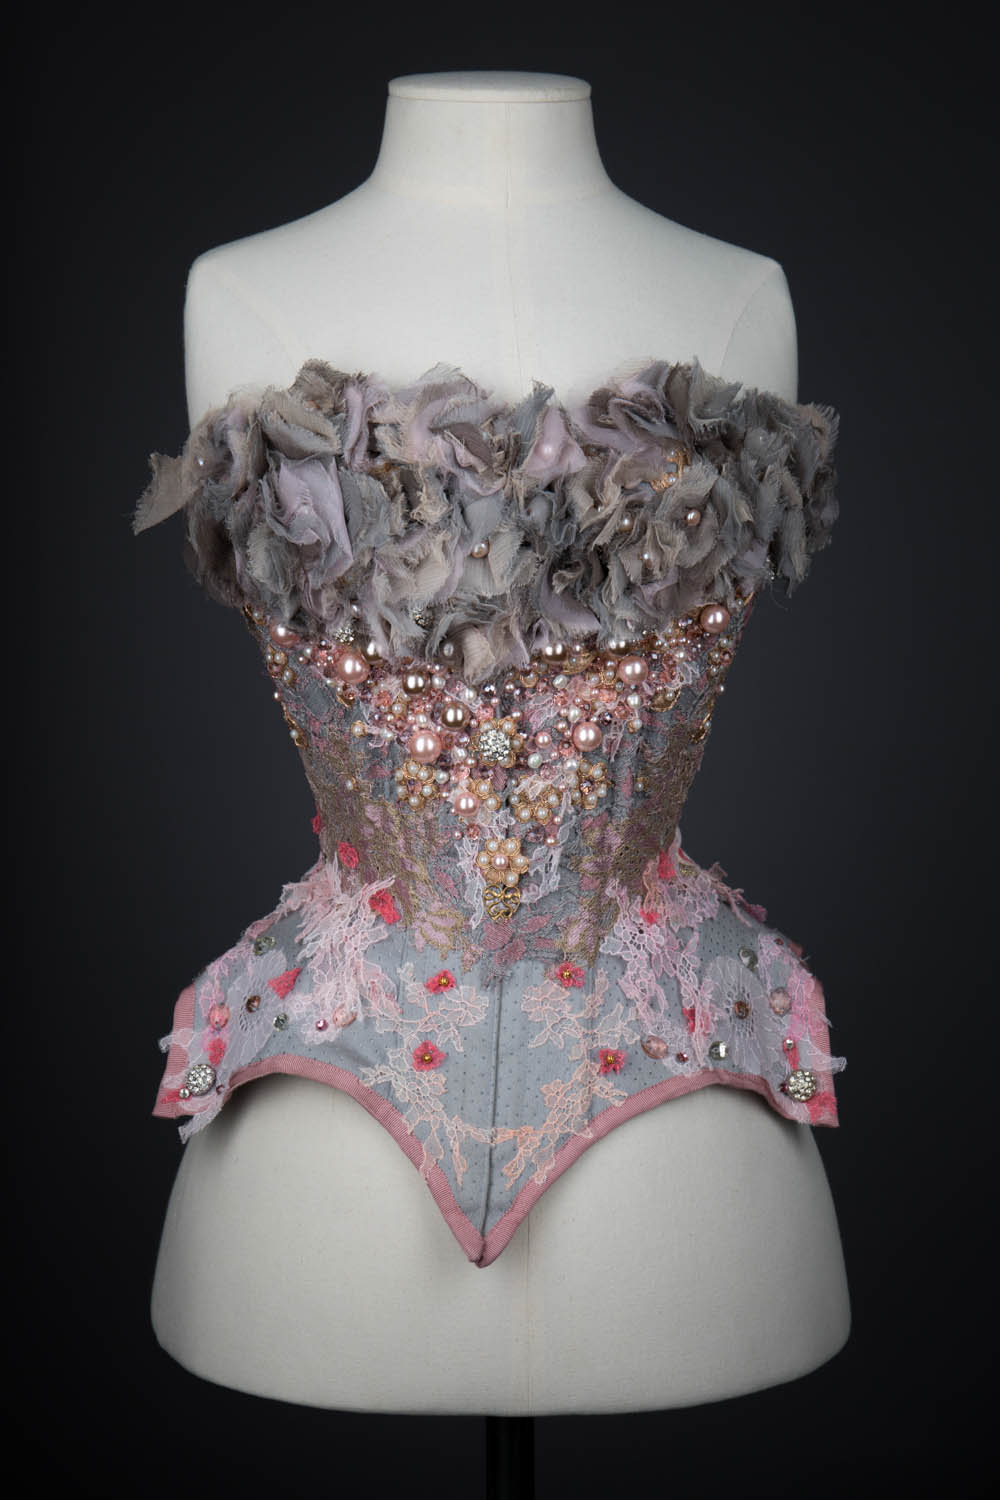 'Babes In Joyland' Collaborative Wedding Corset By Pop Antique. The Underpinnings Museum. Photography by Tigz Rice